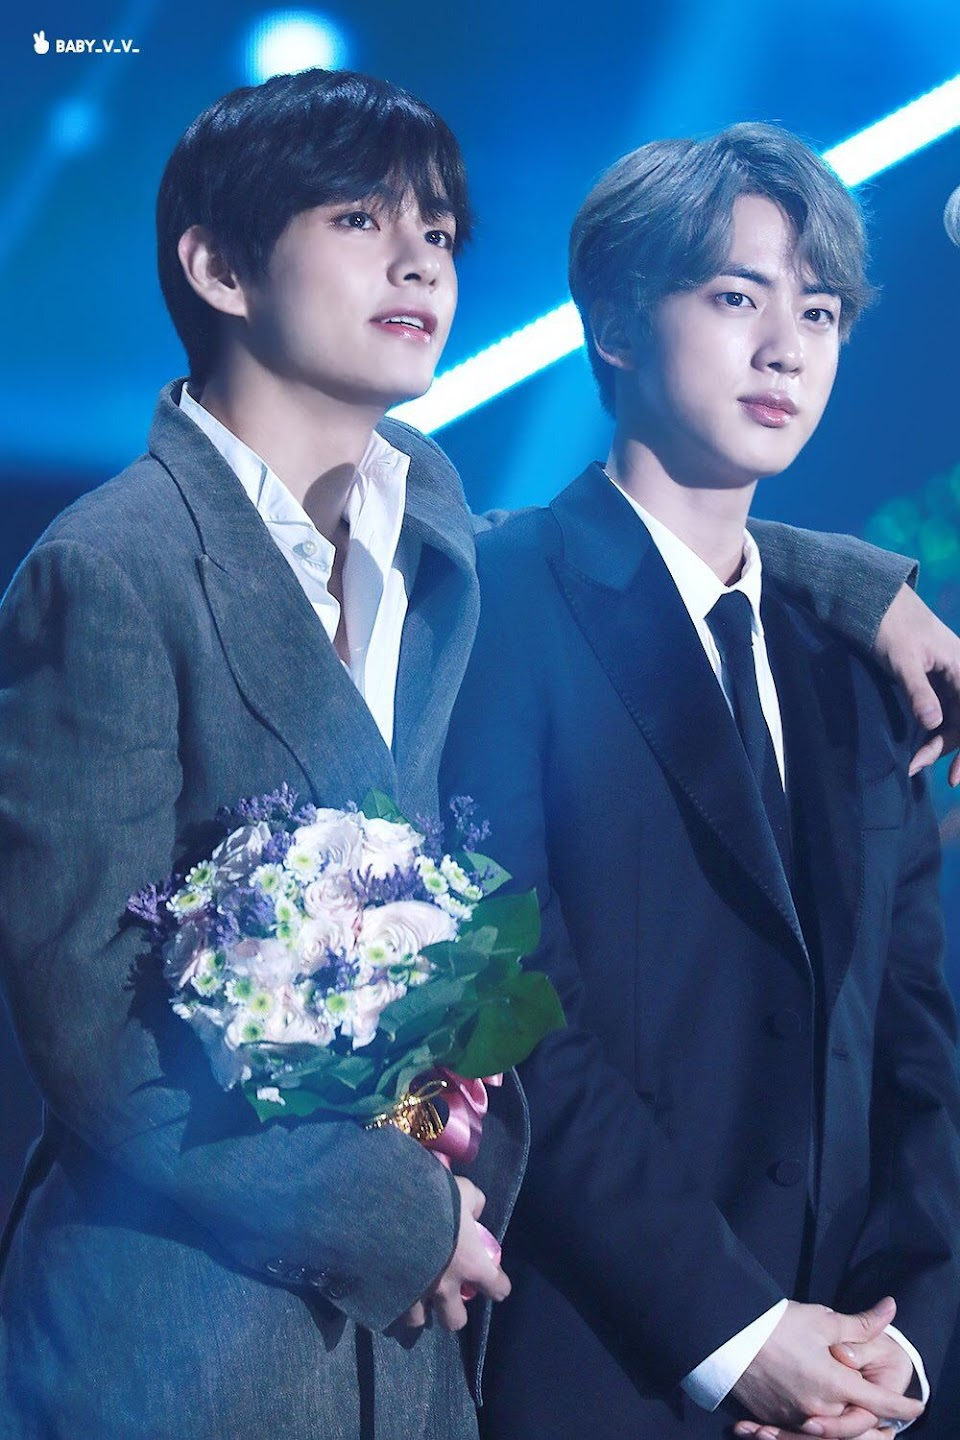 jin and v suits